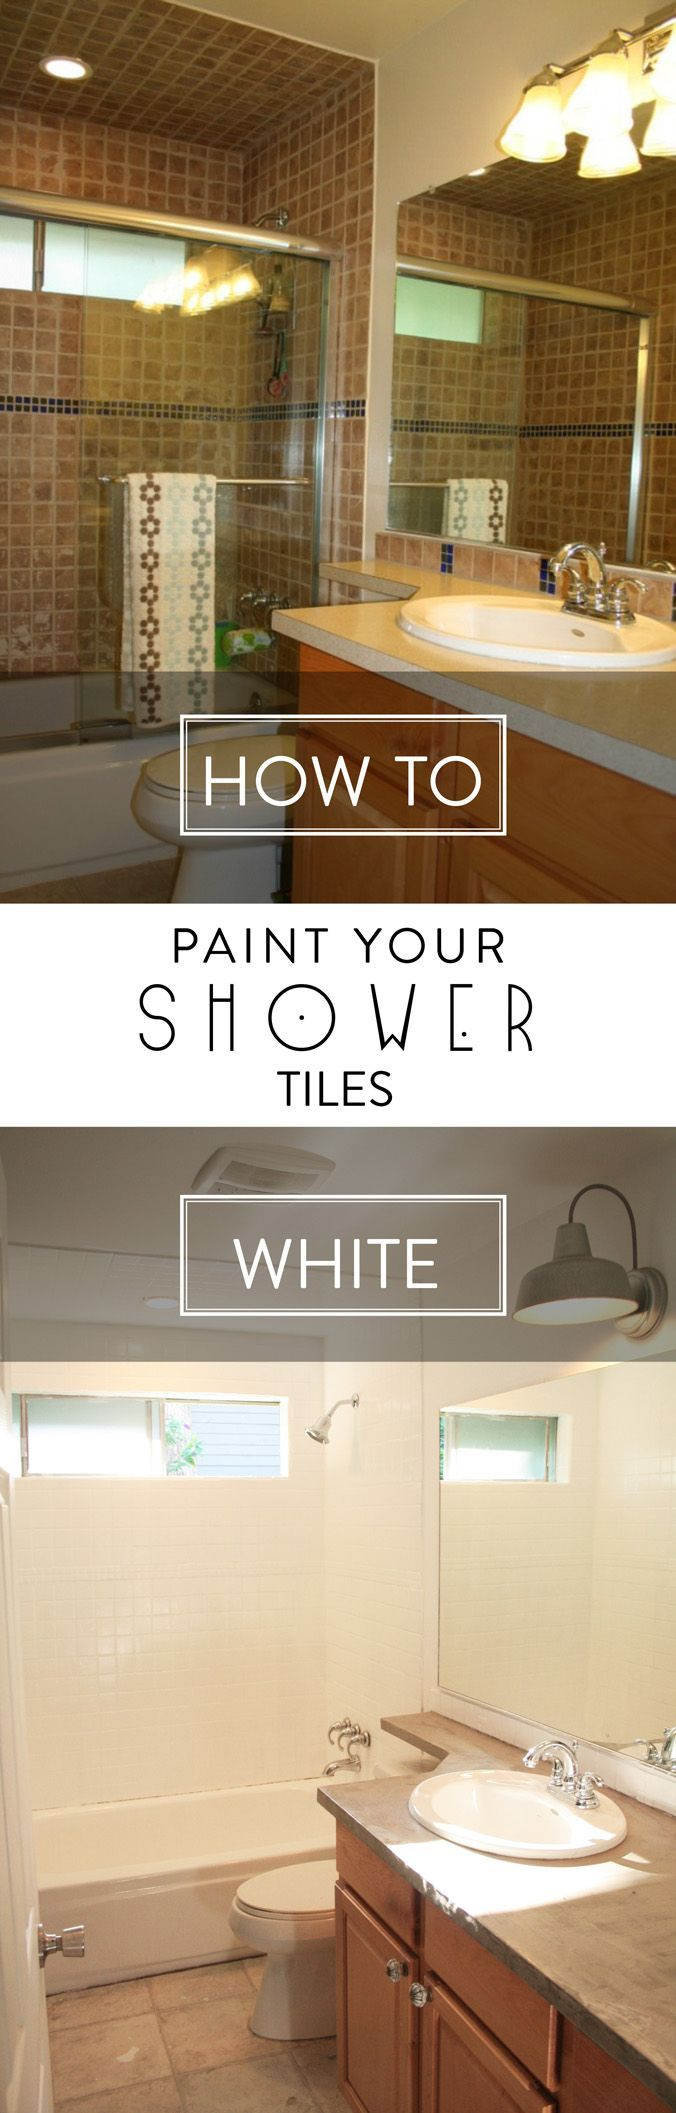 How to refinish outdated tile yes i painted my shower budgeting how to refinish outdated tile yes i painted my shower budgeting tutorials and bathroom repair dailygadgetfo Images